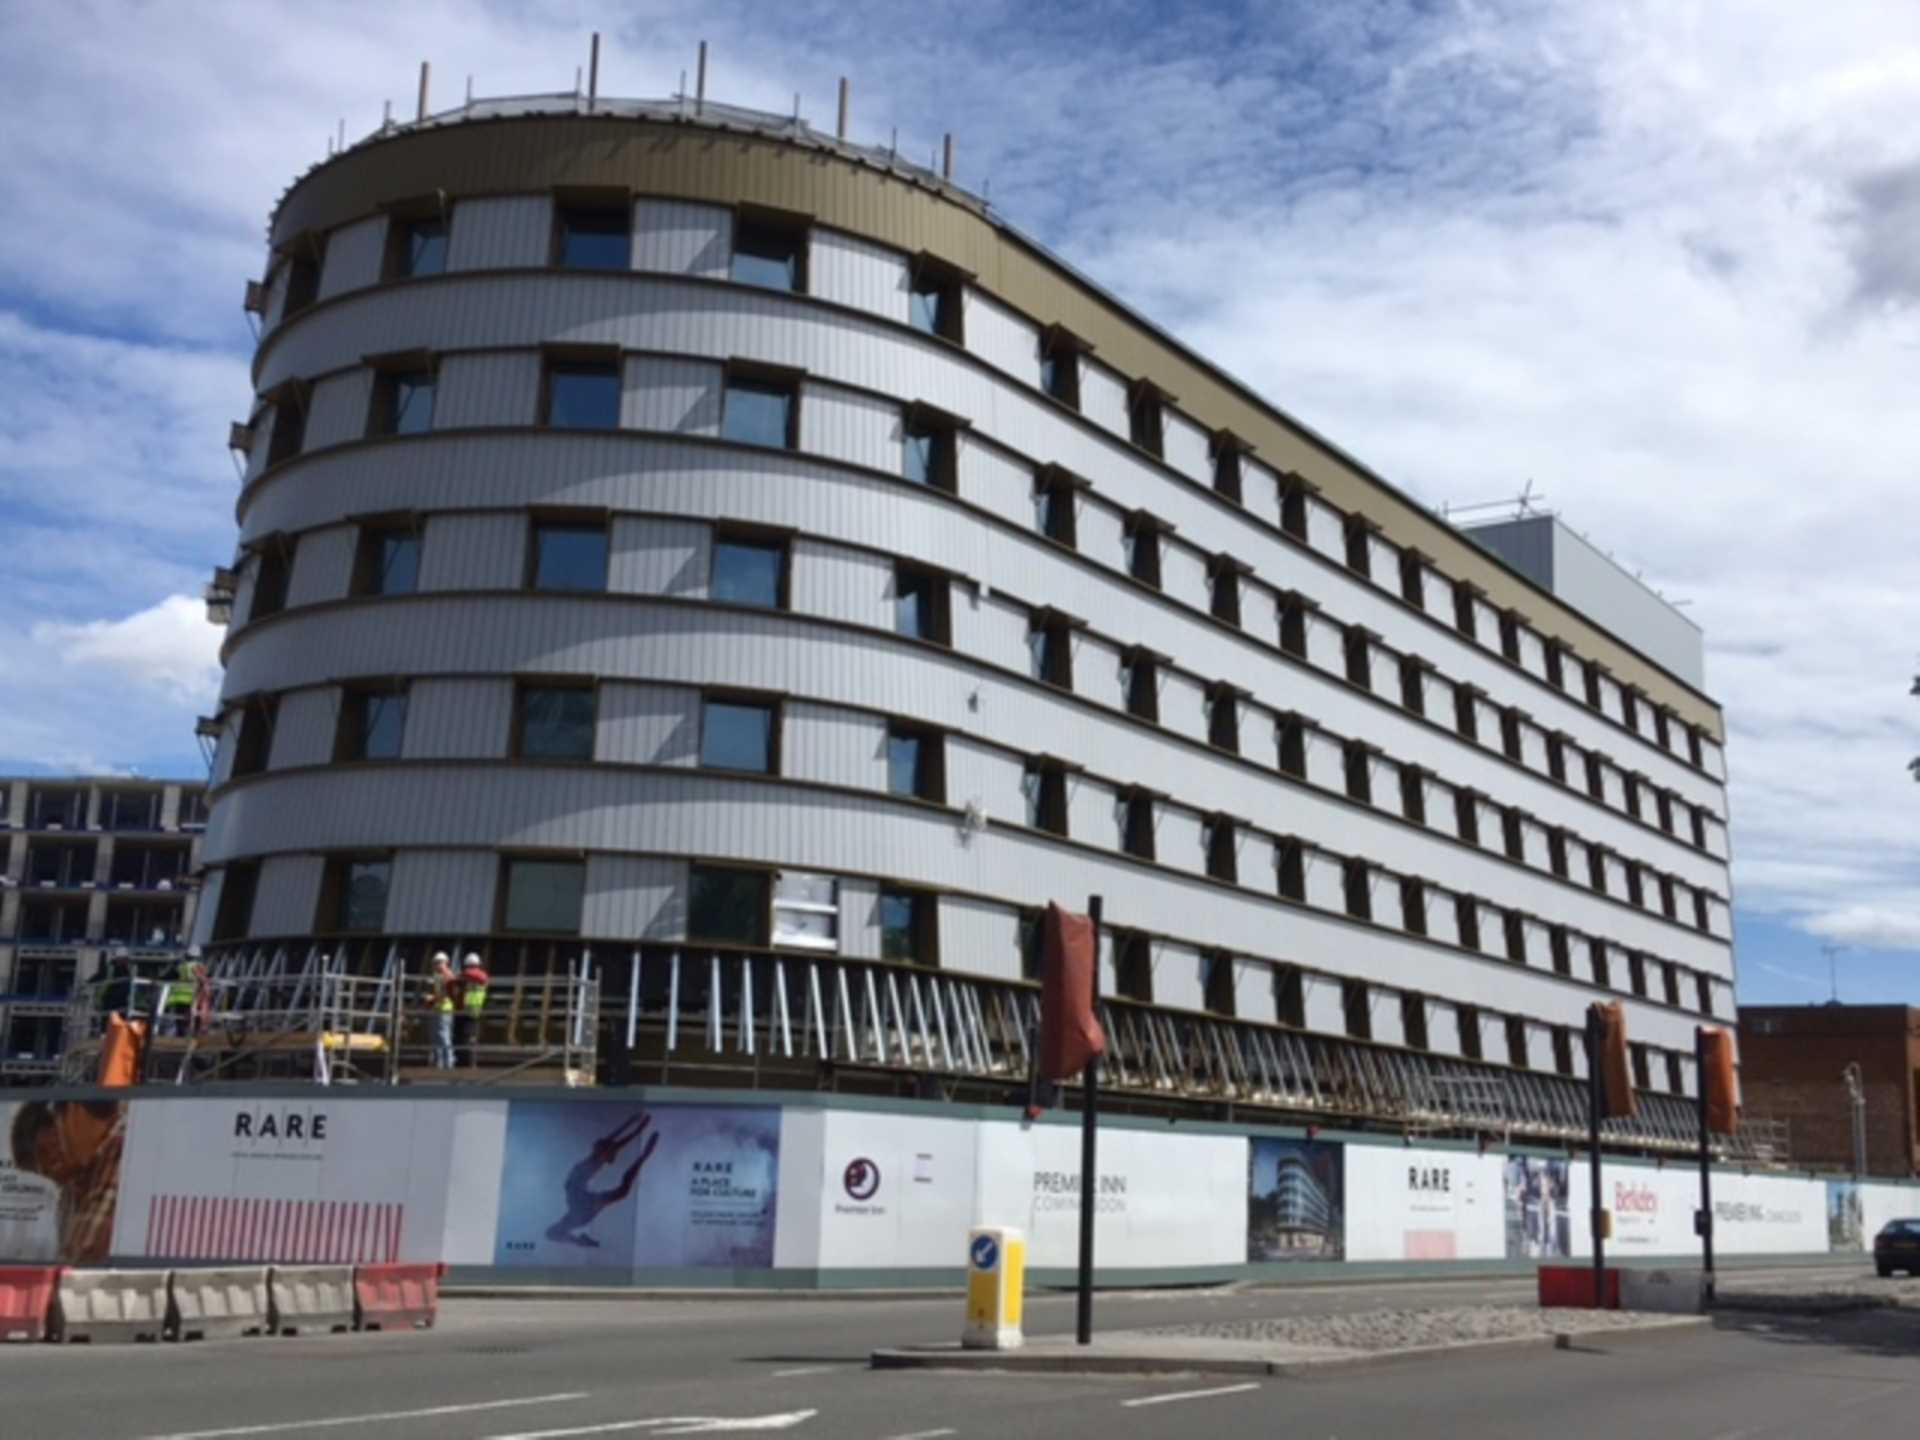 Premier Inn Coming to Royal Arsenal